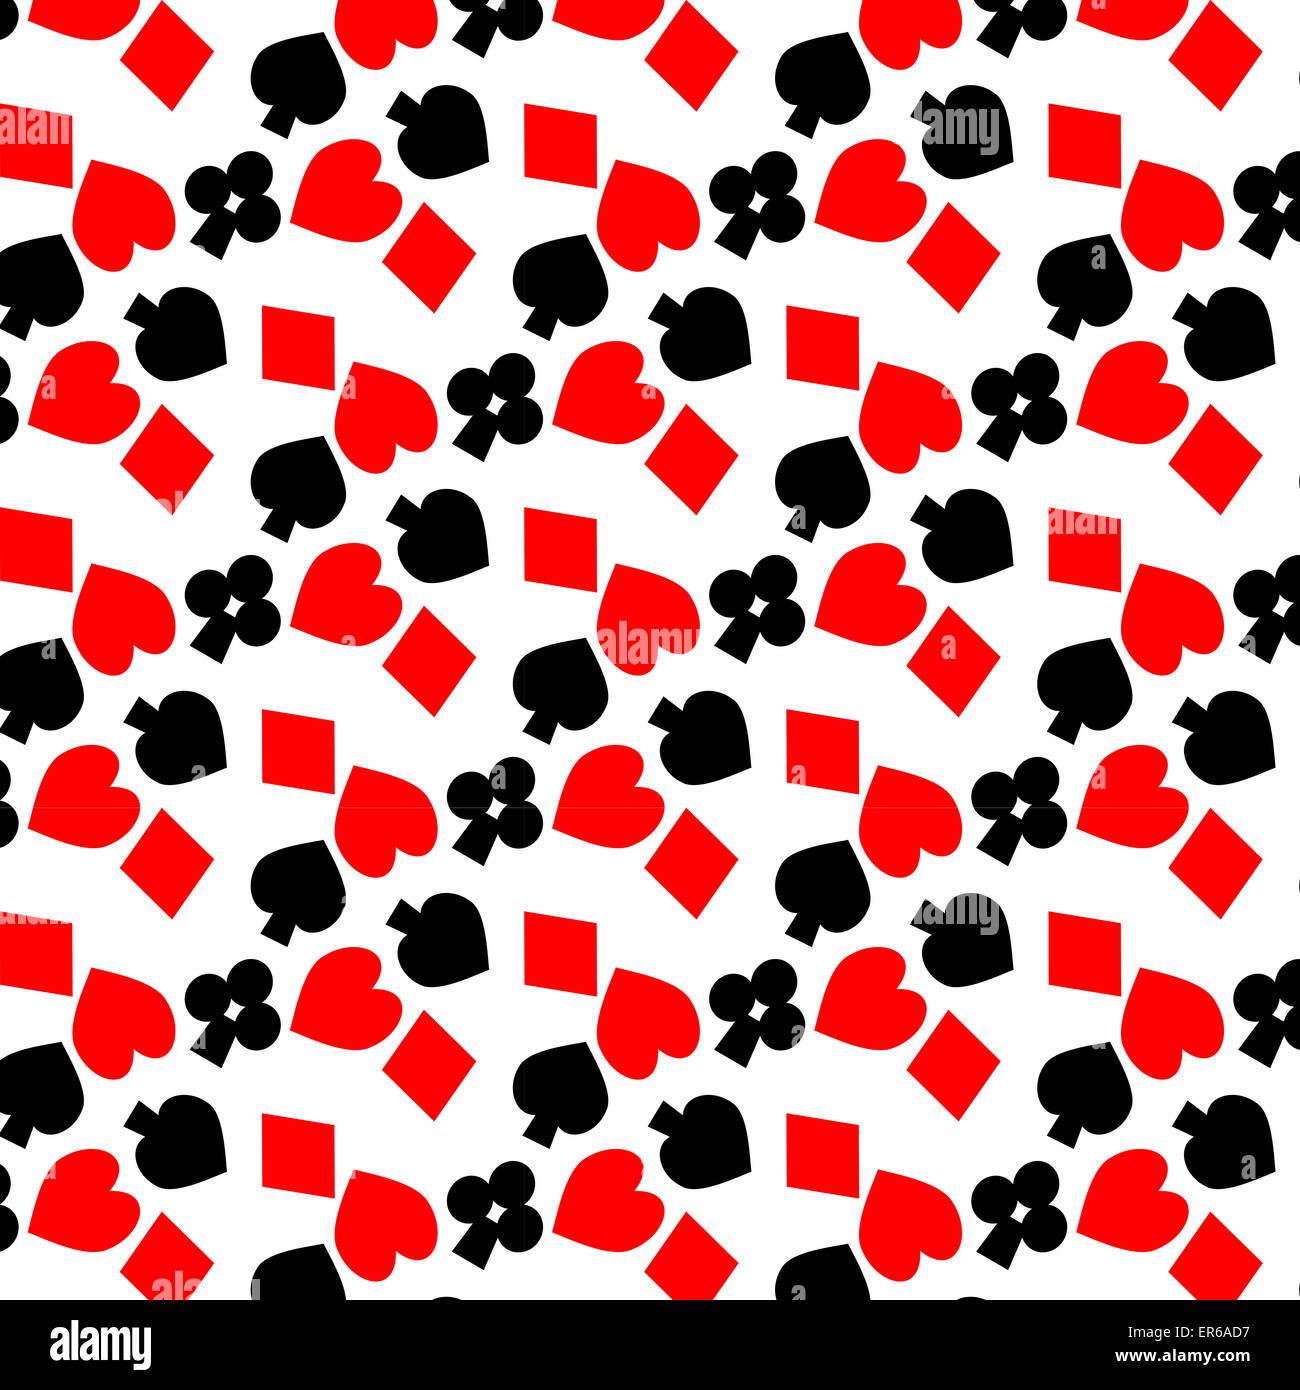 Poke Live Dcf Shapes: Pattern Card Suits. Casino And Shape, Decoration And Game